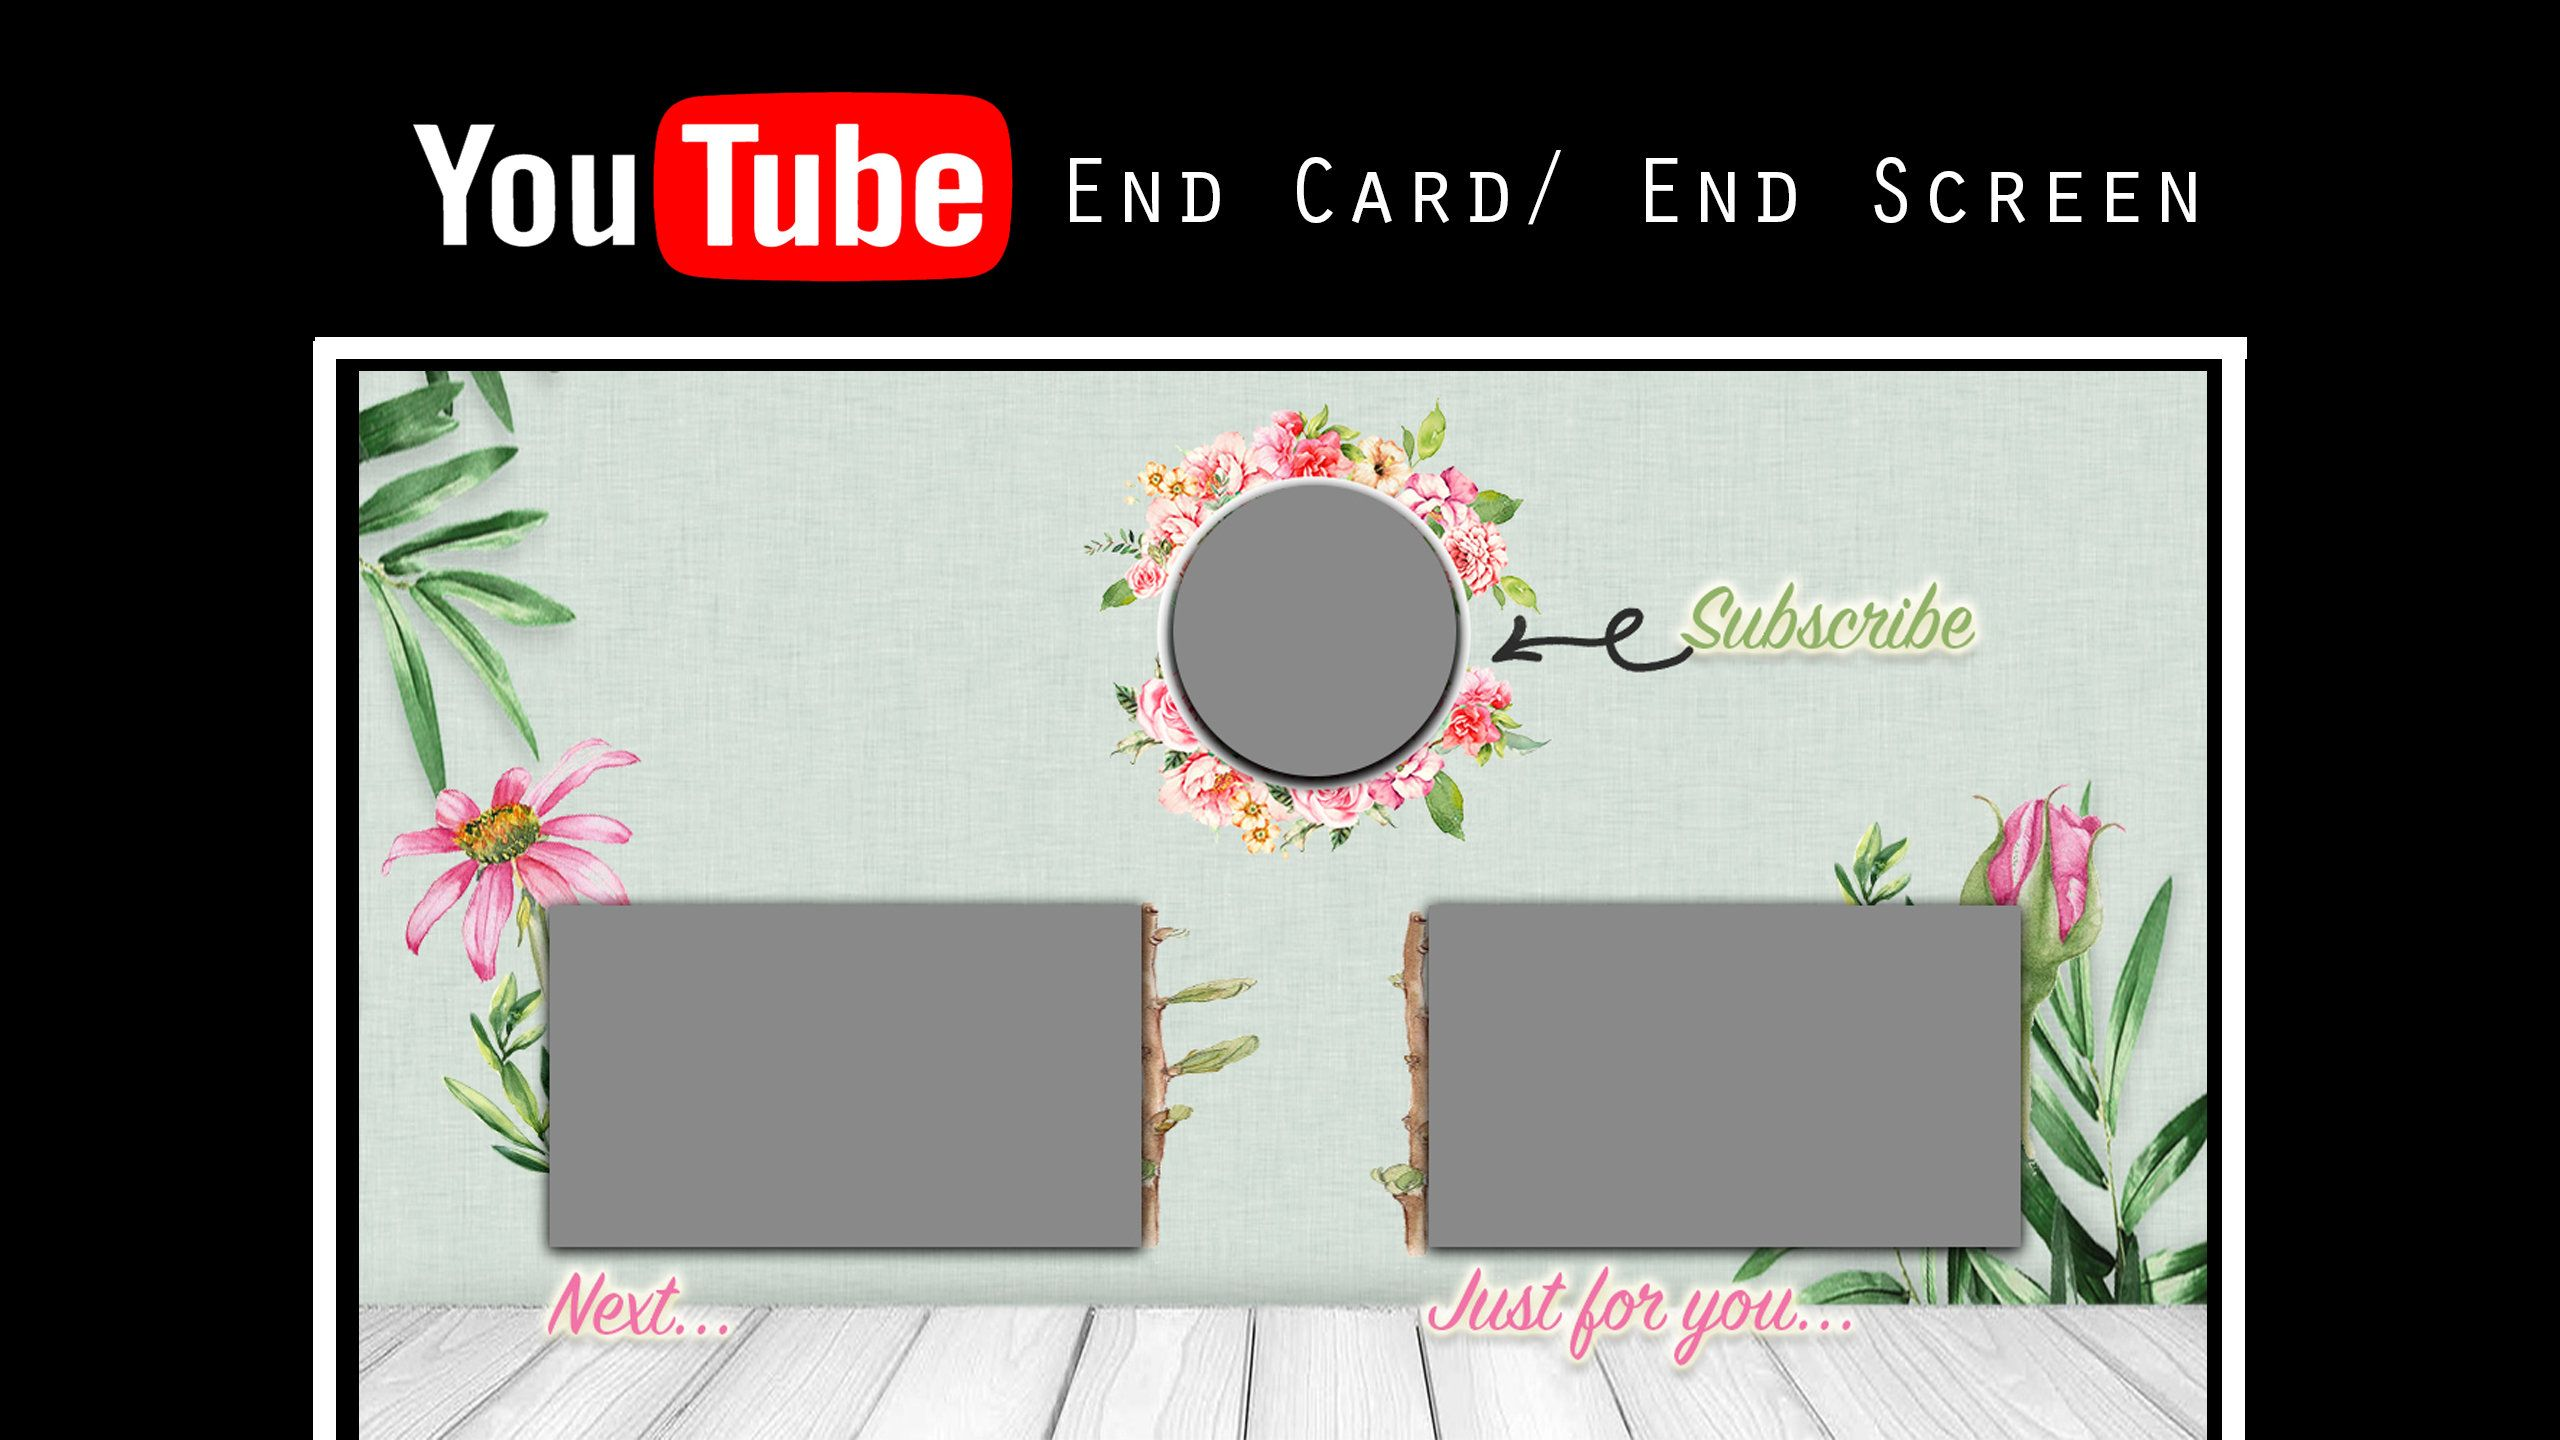 Youtube End Screen Youtube End Card Video Outro Card Stickers Beautiful Watercolour Flowers Youtube Digital Elements Wellness Design